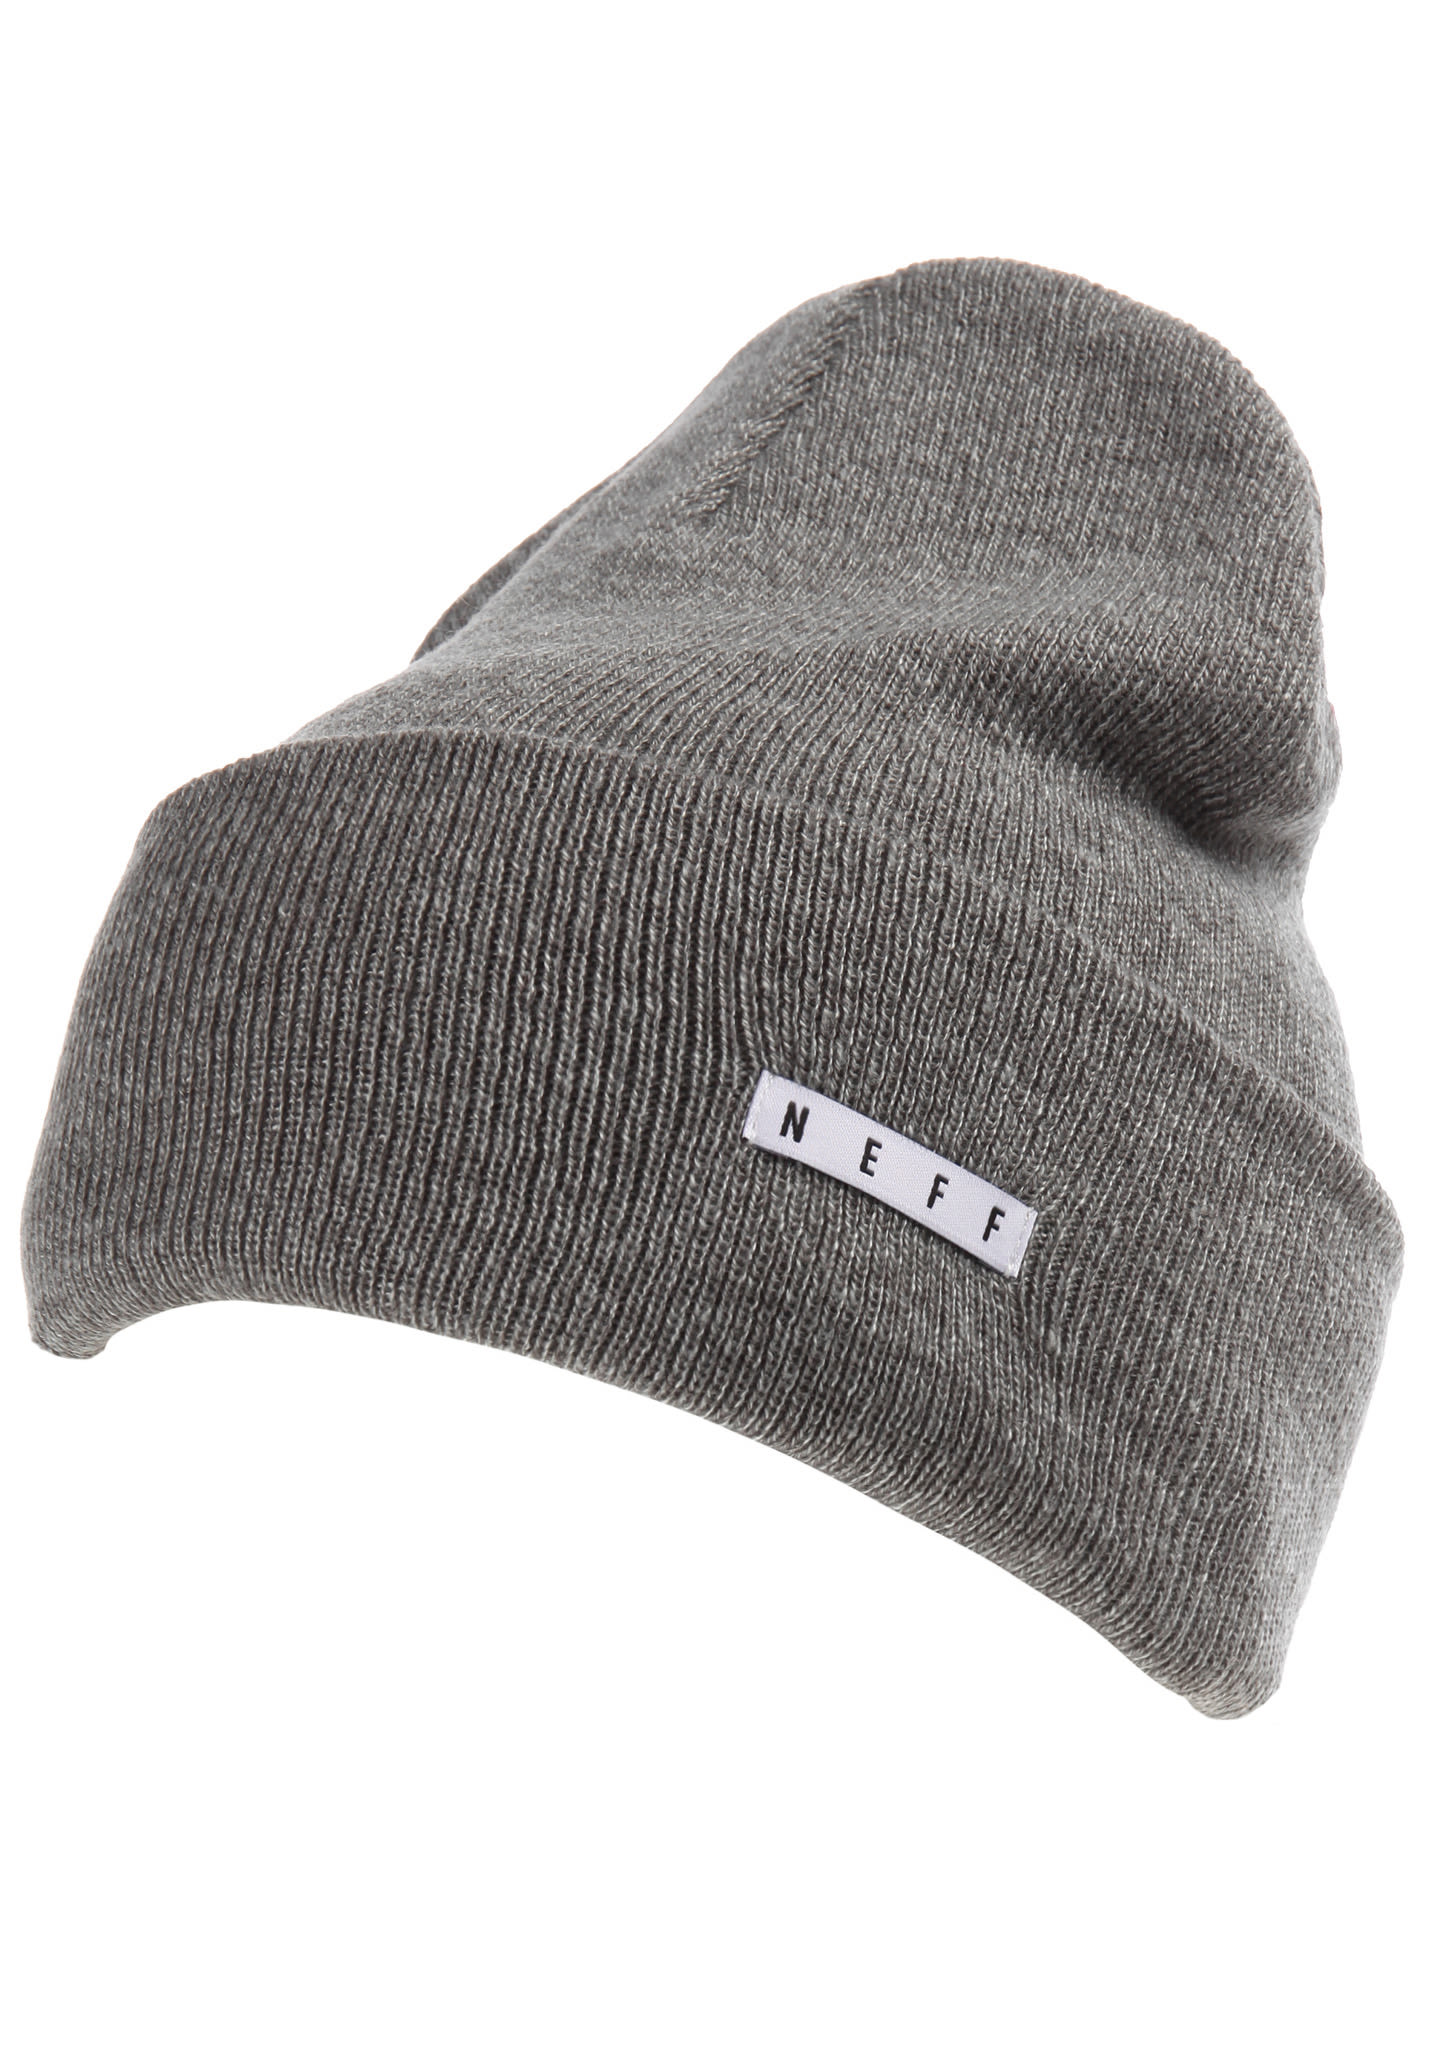 NEFF Lawrence - Beanie - Grey - Planet Sports be2d876dc31